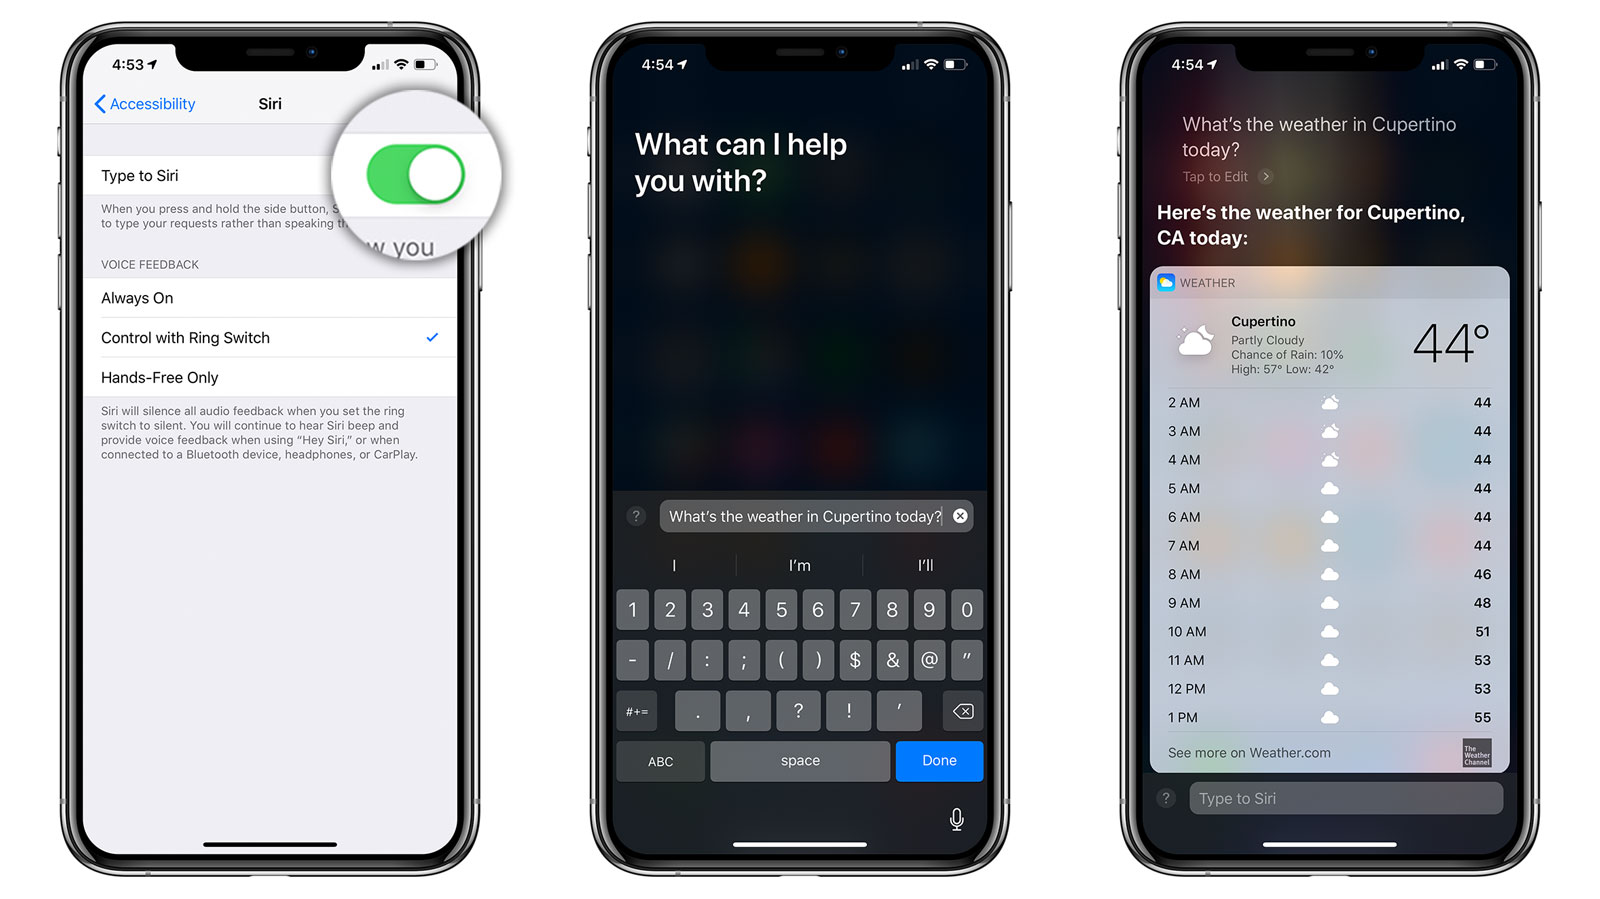 Enable 'Type to Siri' to Type Your Siri Questions Instead of